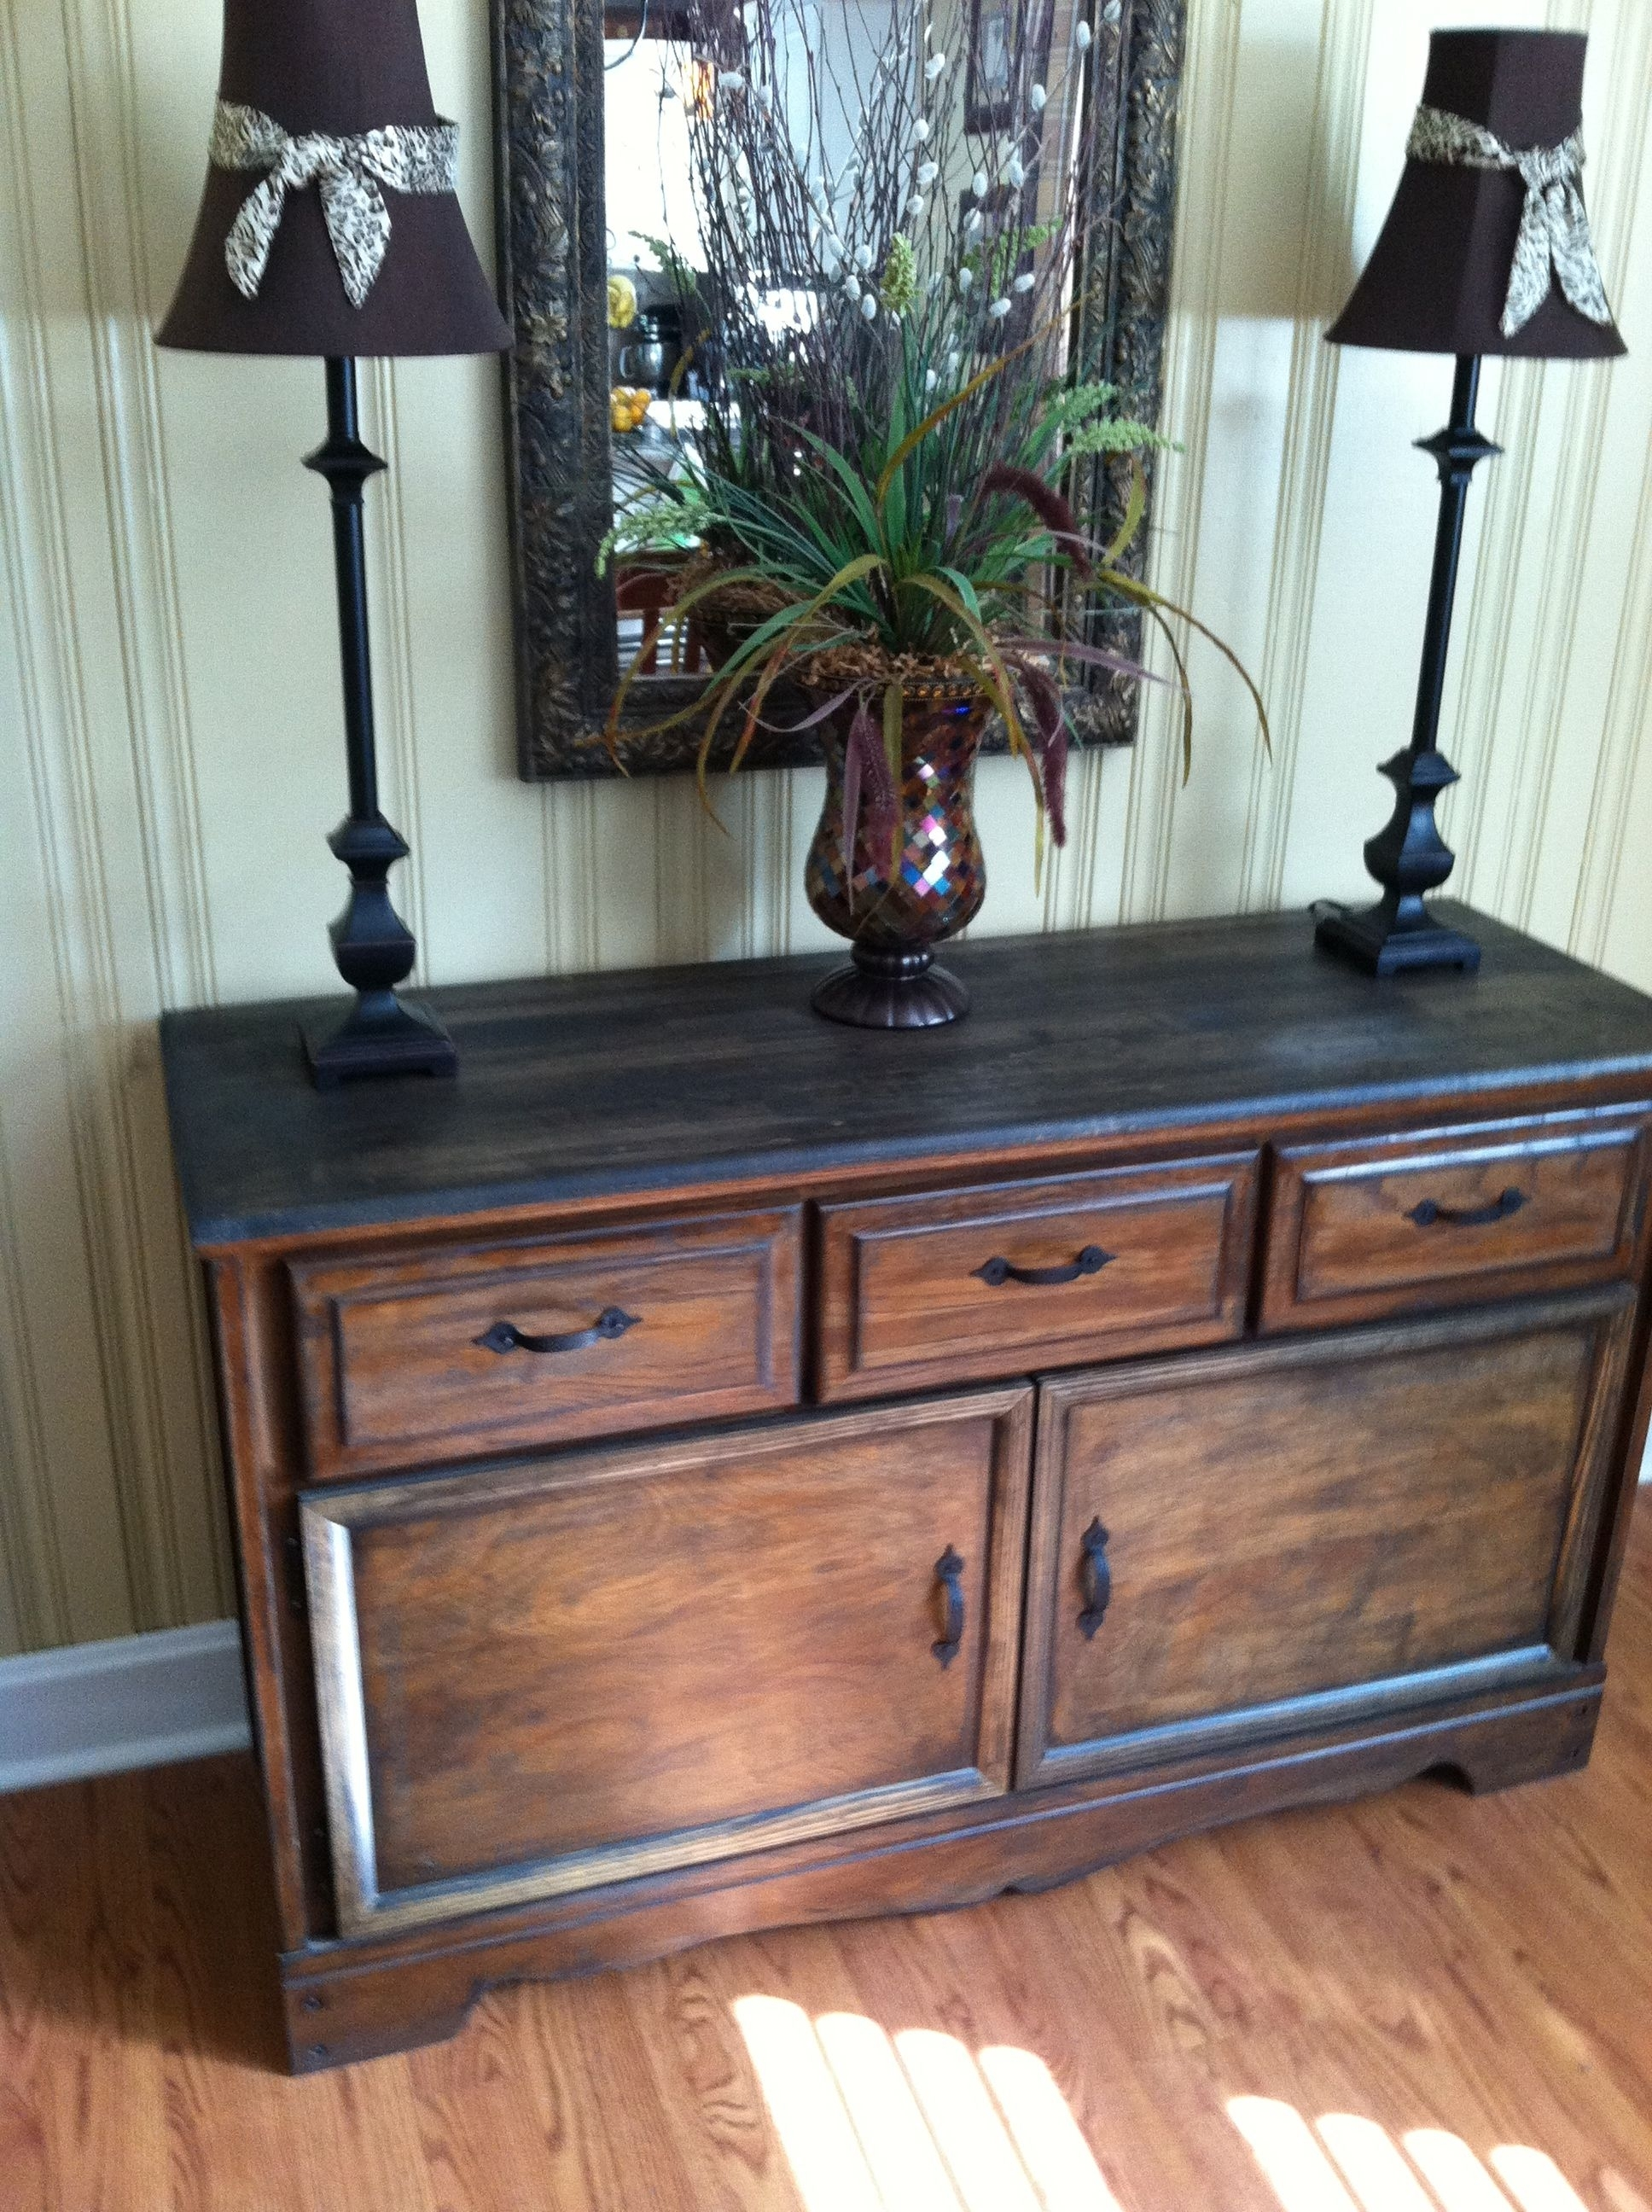 Old Refurbished Dresser Turned Buffet Table $35 Goodwill Find in Cass 2-Door Sideboards (Image 13 of 30)